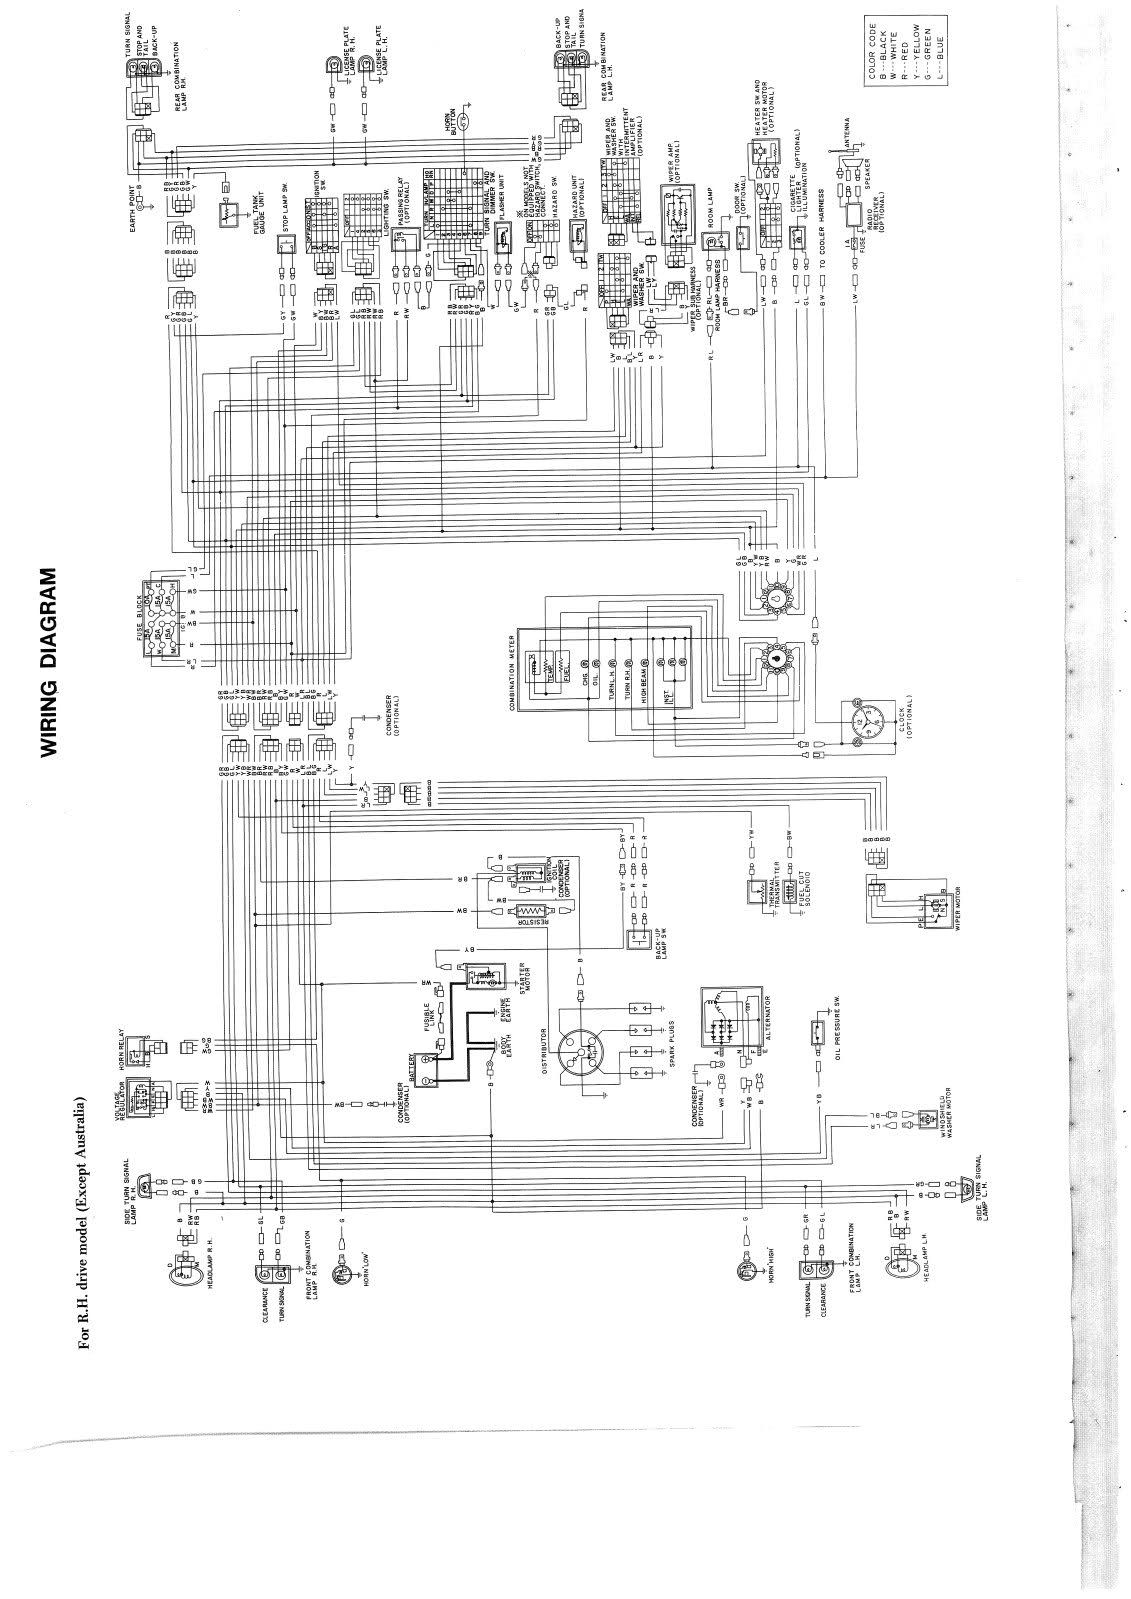 medium resolution of wiring diagram for nissan 1400 bakkie 6